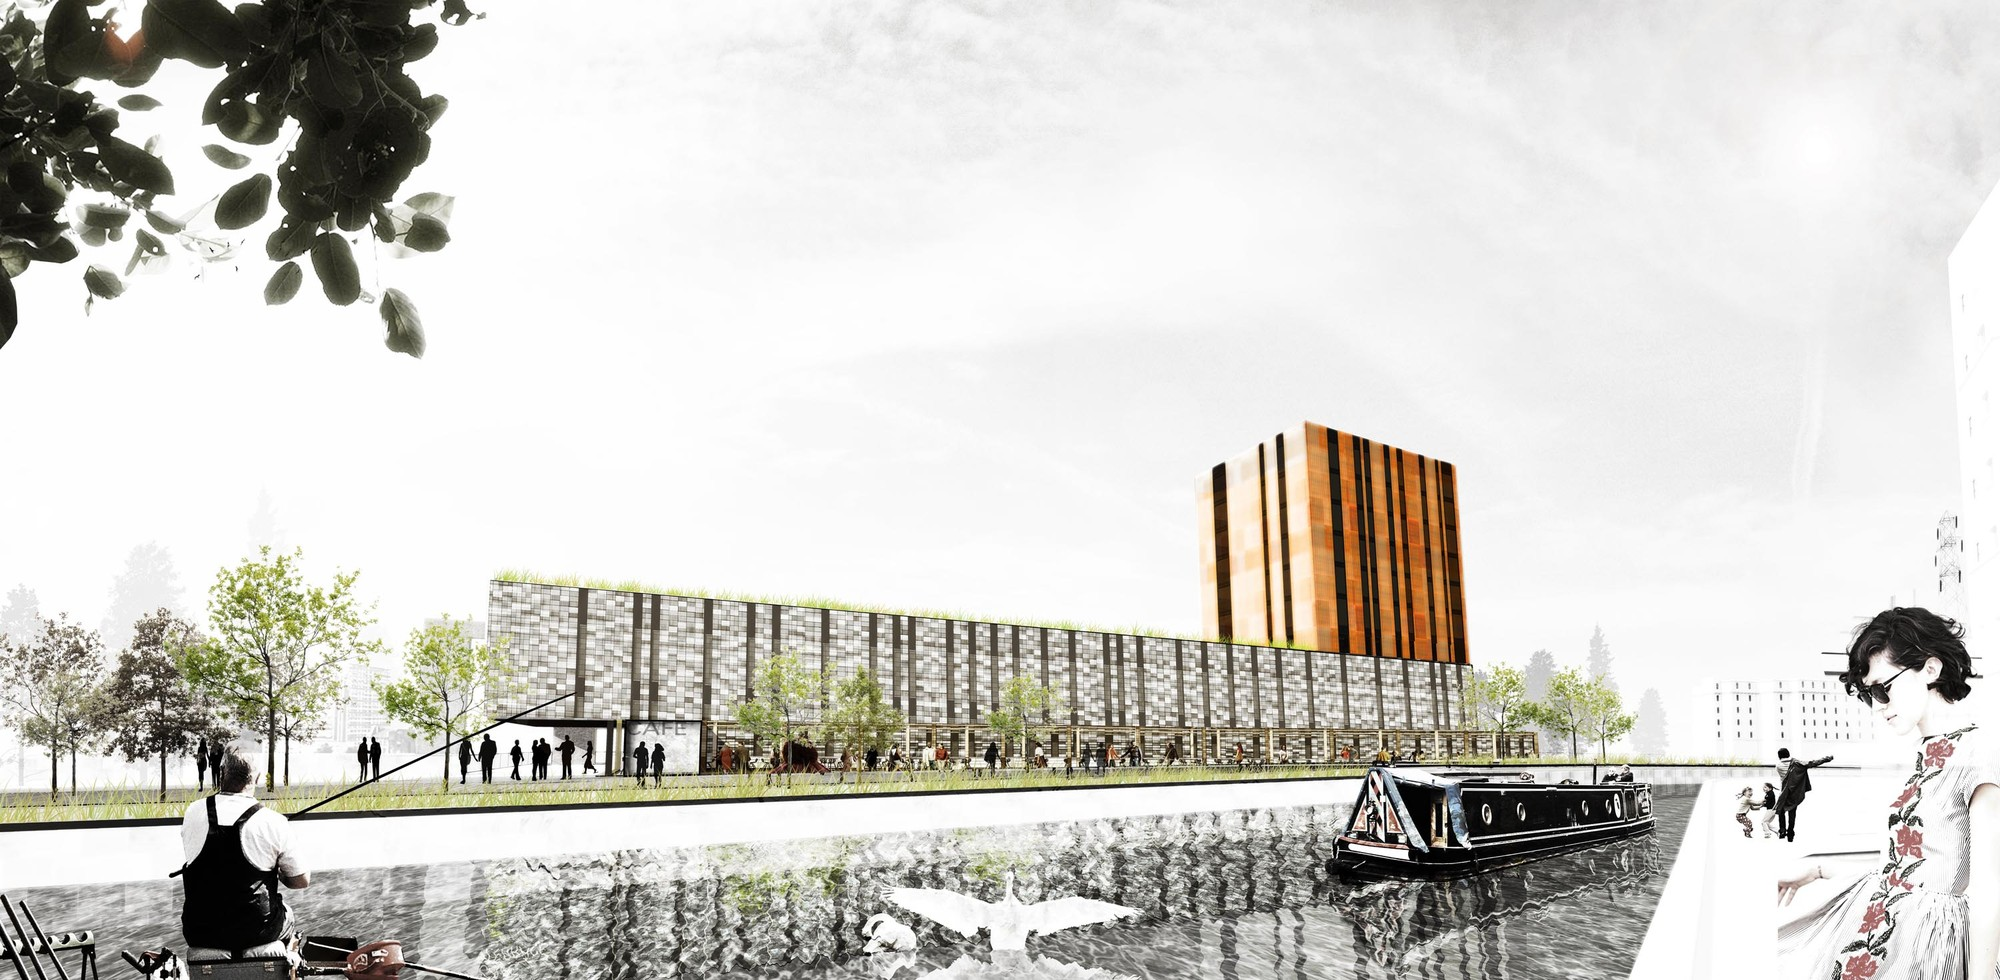 Speirs Locks Student Campus Proposal / Stallan-Brand, Courtesy of Stallan-Brand